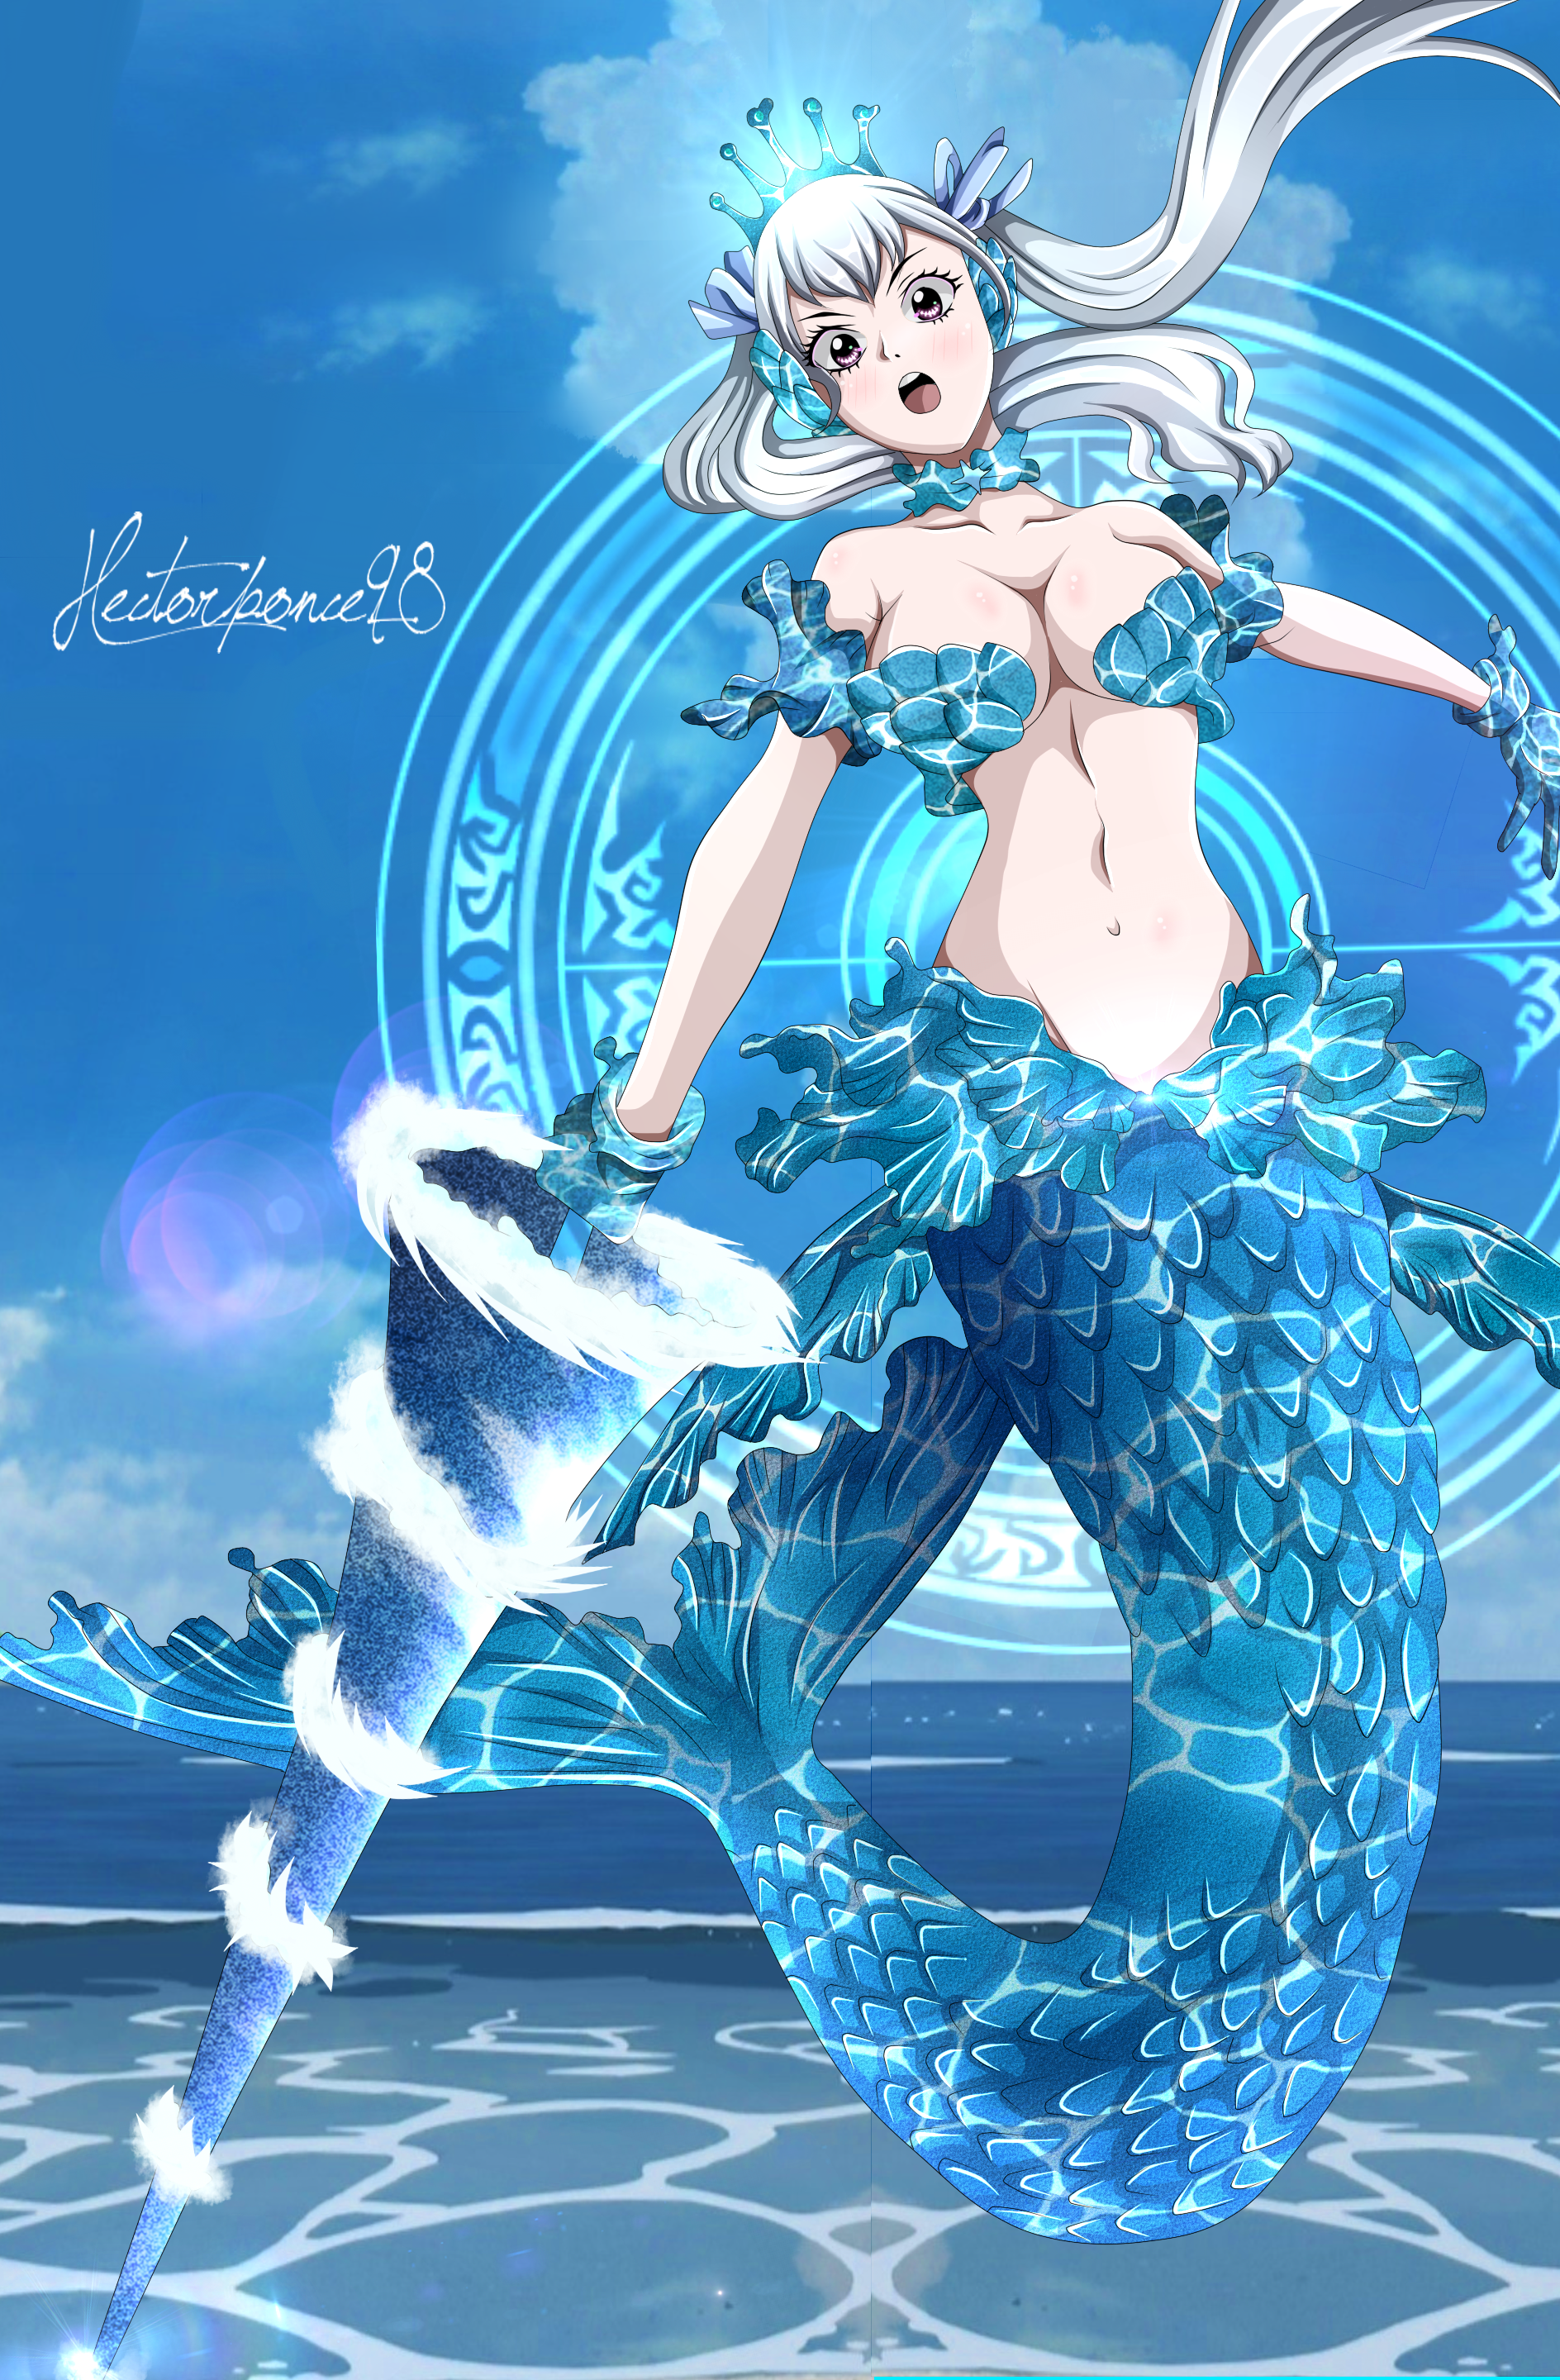 Black Clover Noelle Valkyrie Form Mermaid By Hectorponce98 On Deviantart